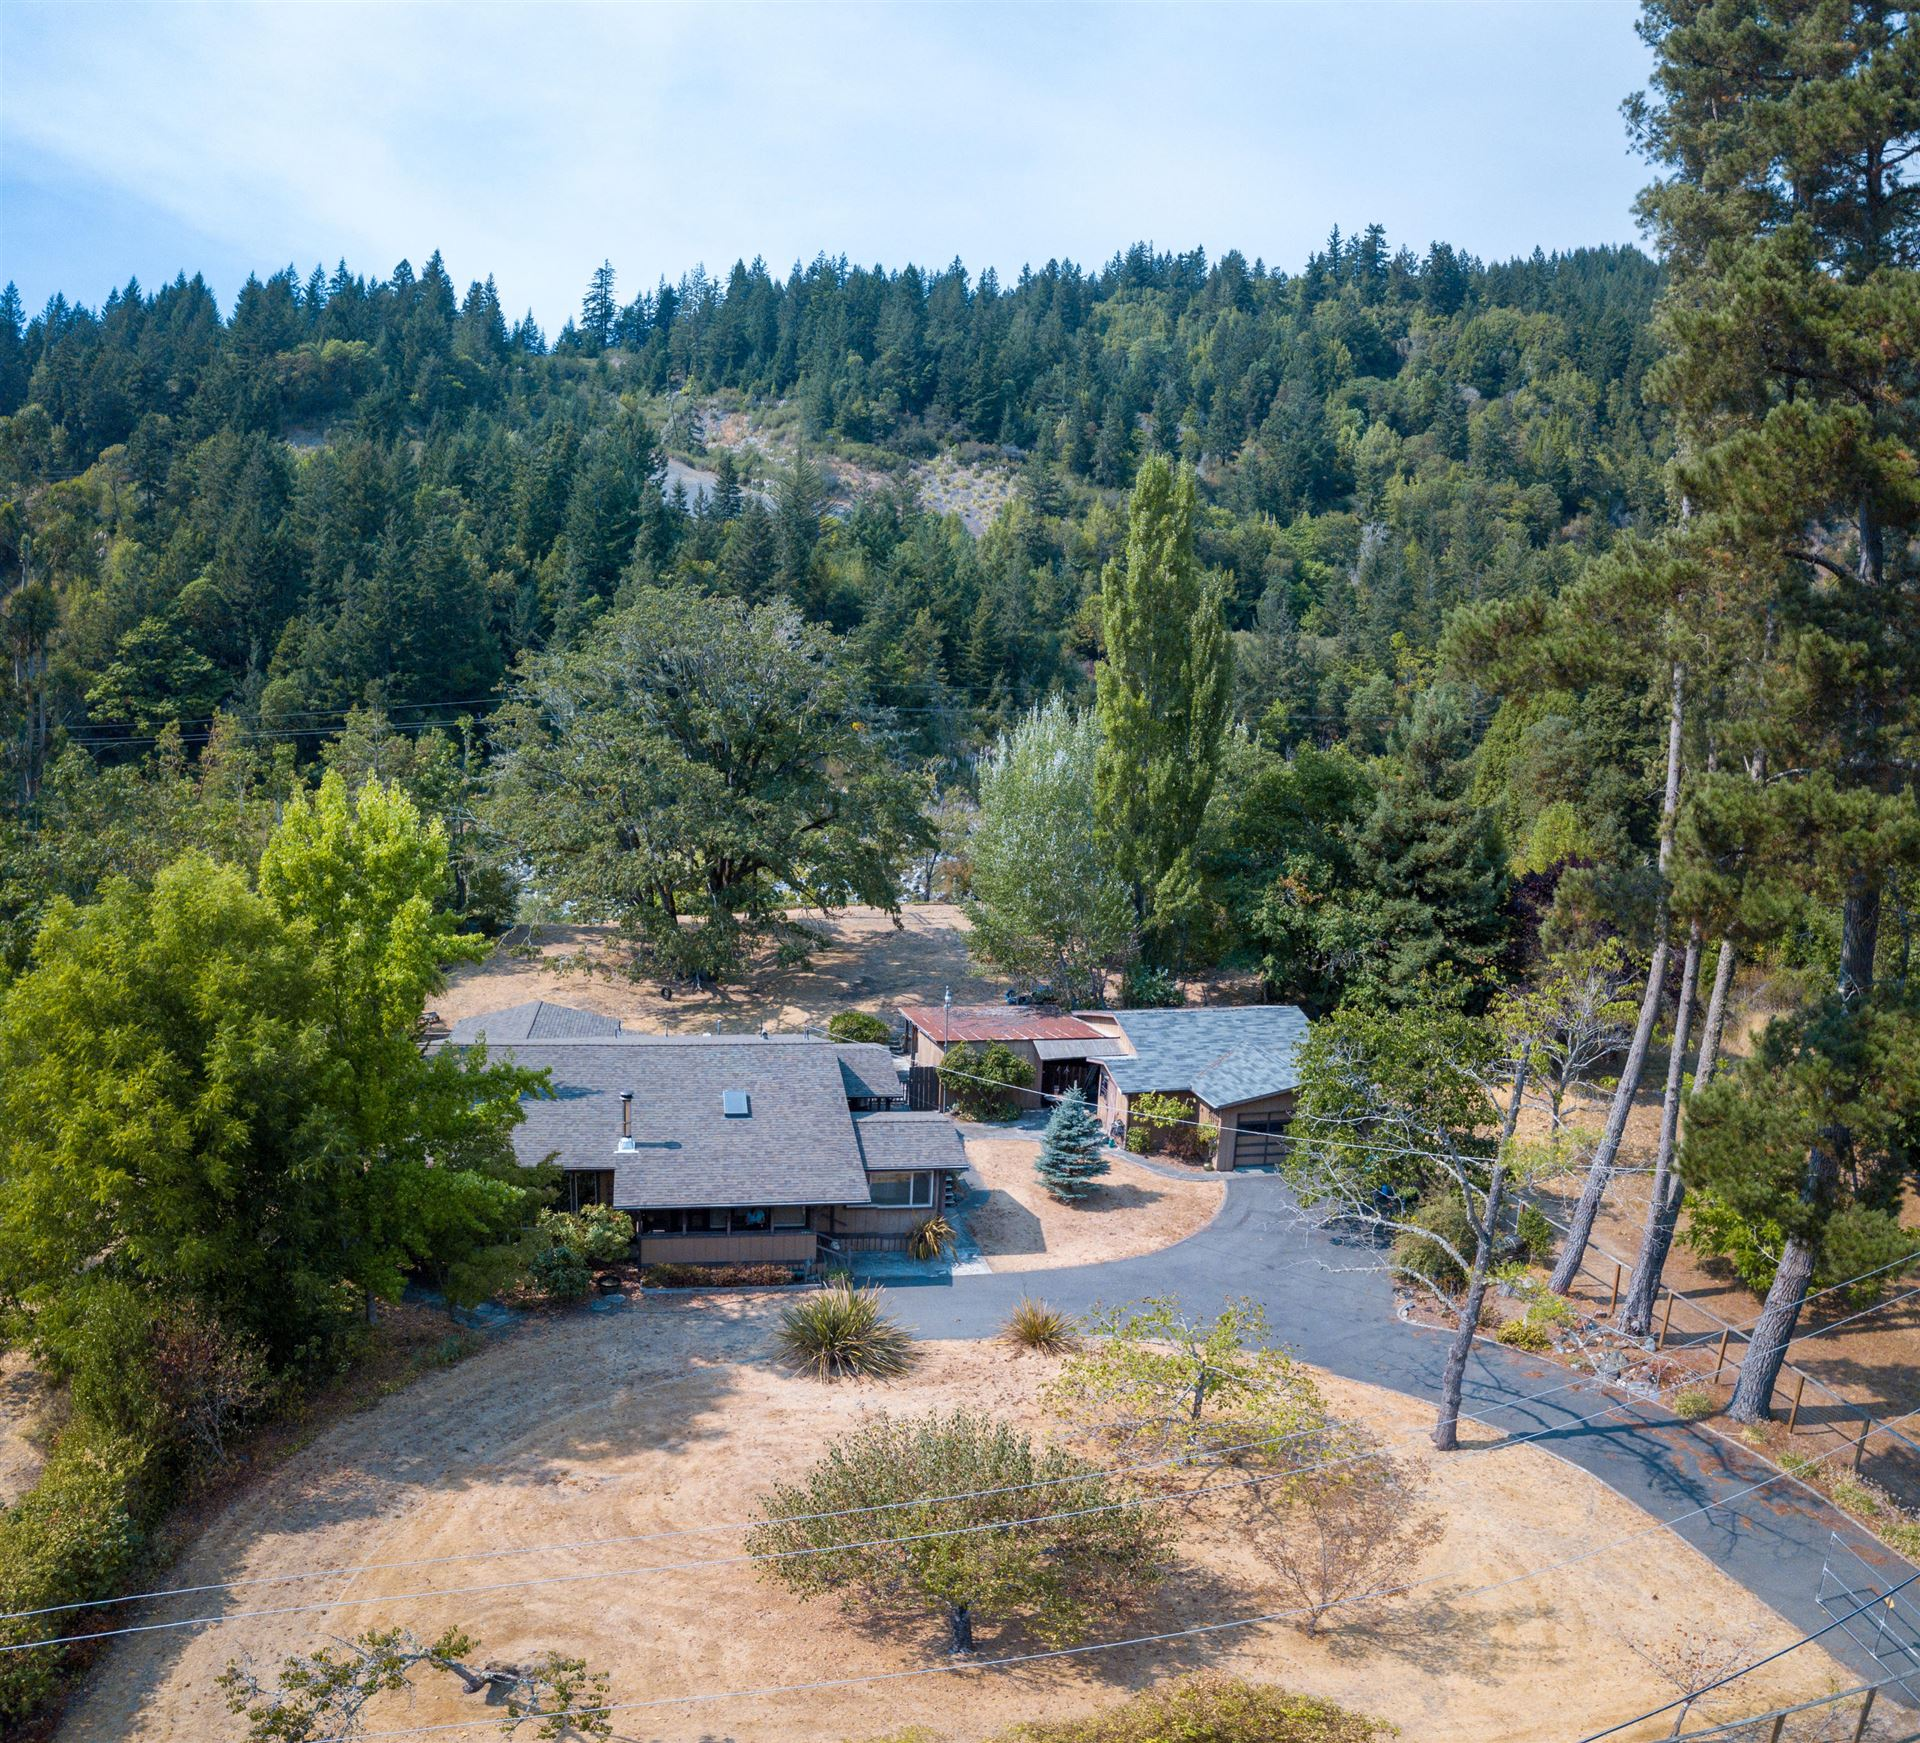 491 Golden Gate Drive, Carlotta, CA 95528 - MLS#: 257955